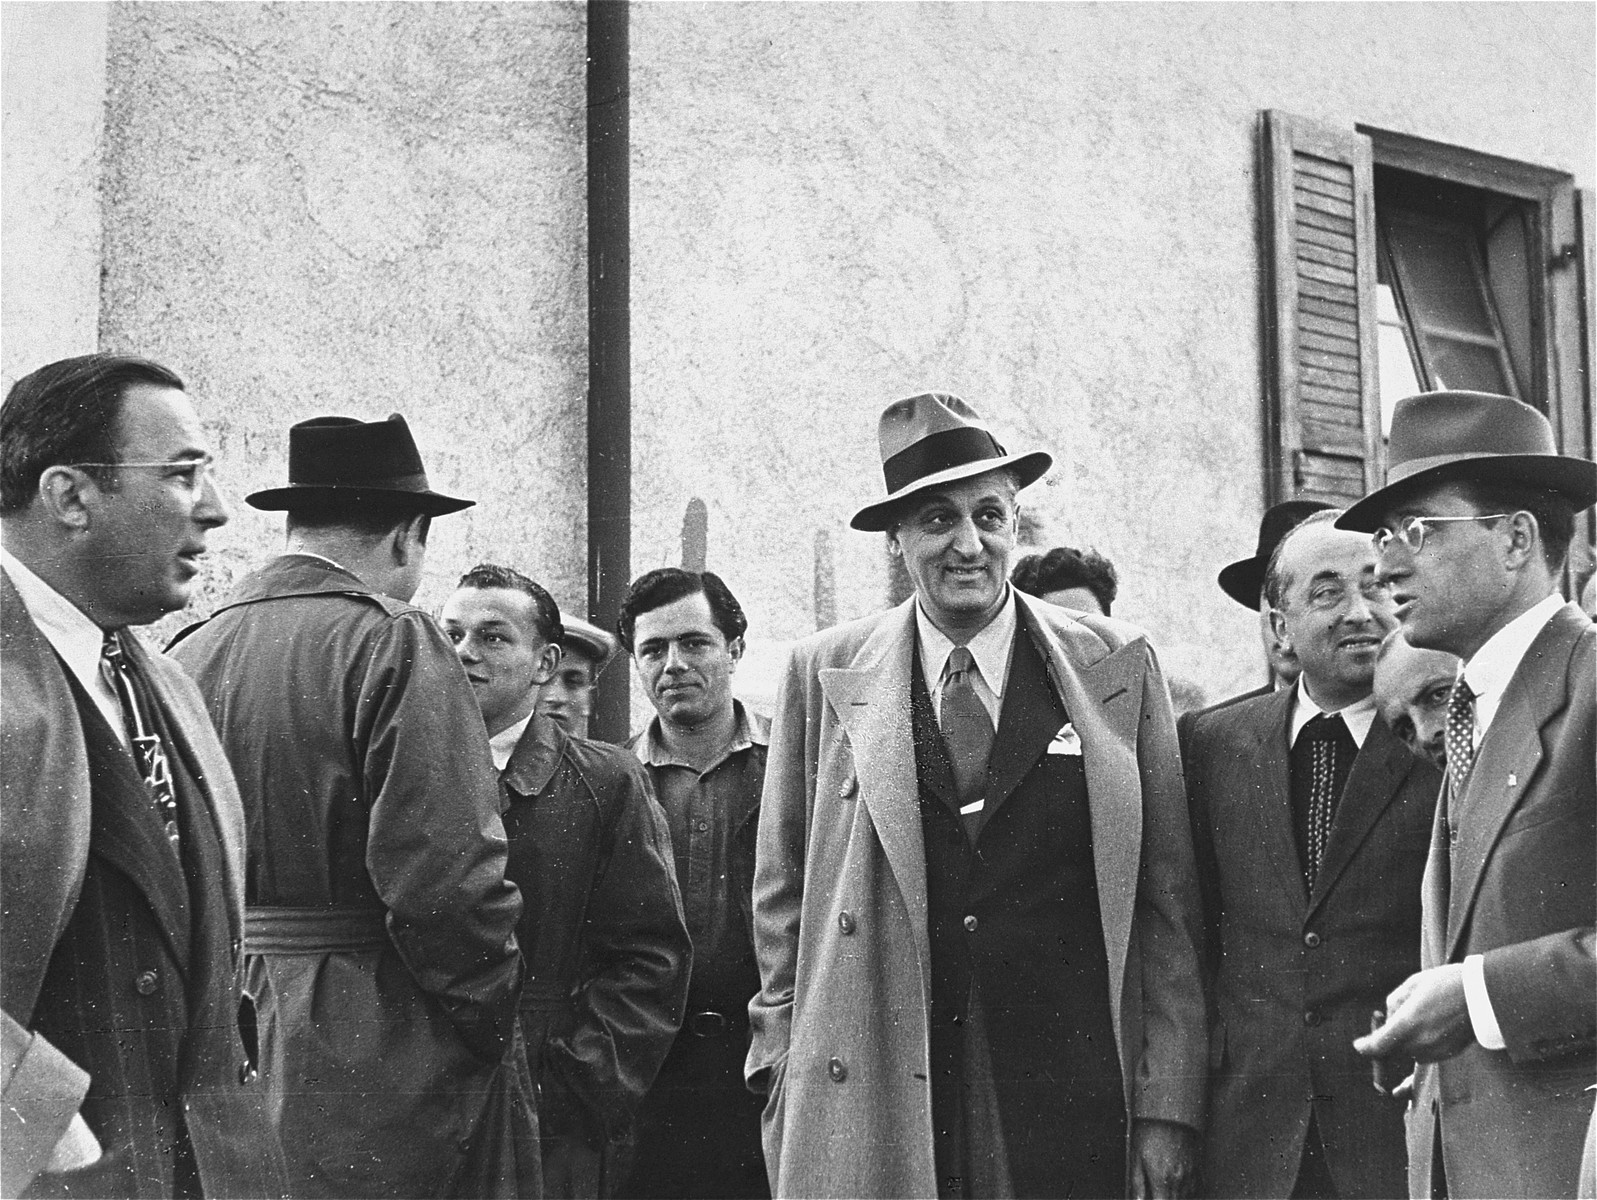 Saul Sorrin (with his back to the camera) director of UNRRA in the Munich area, and Samuel Haber (right) director of the JDC in Germany, converse with American Jews who are on an official visit to the Foehrenwald displaced persons camp.